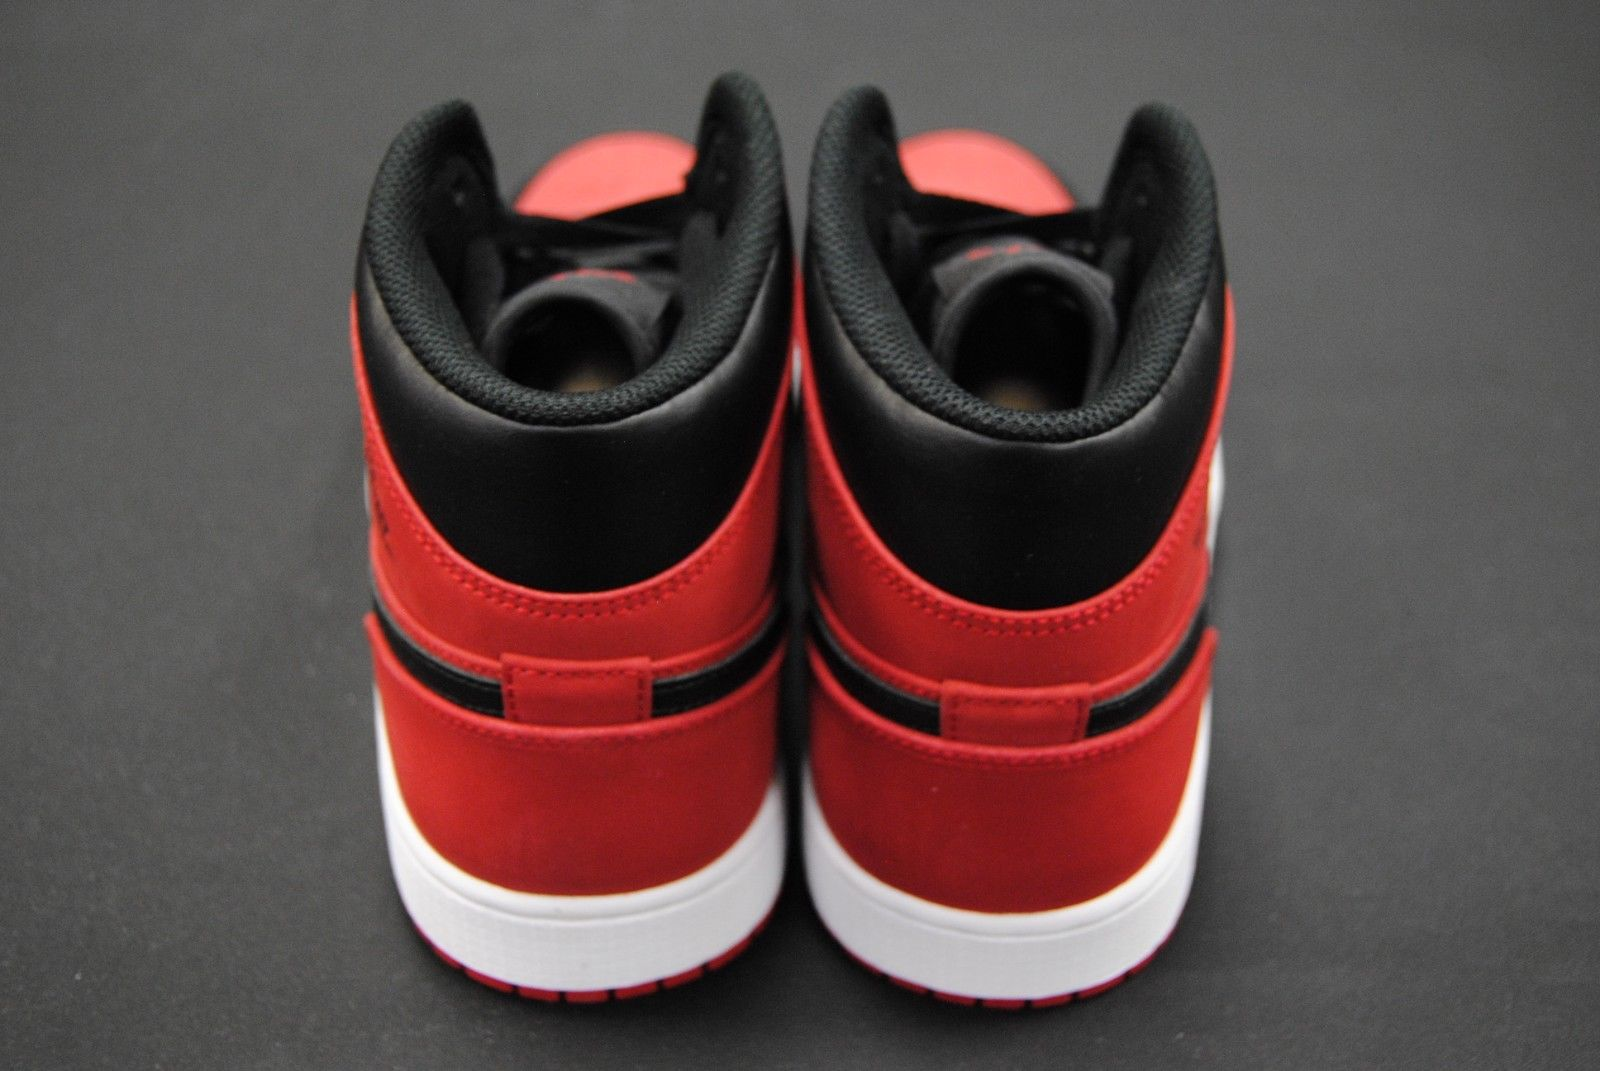 [554724 610] NEW MEN'S AIR JORDAN 1 MID GYM RED BLACK WHITE JO1375